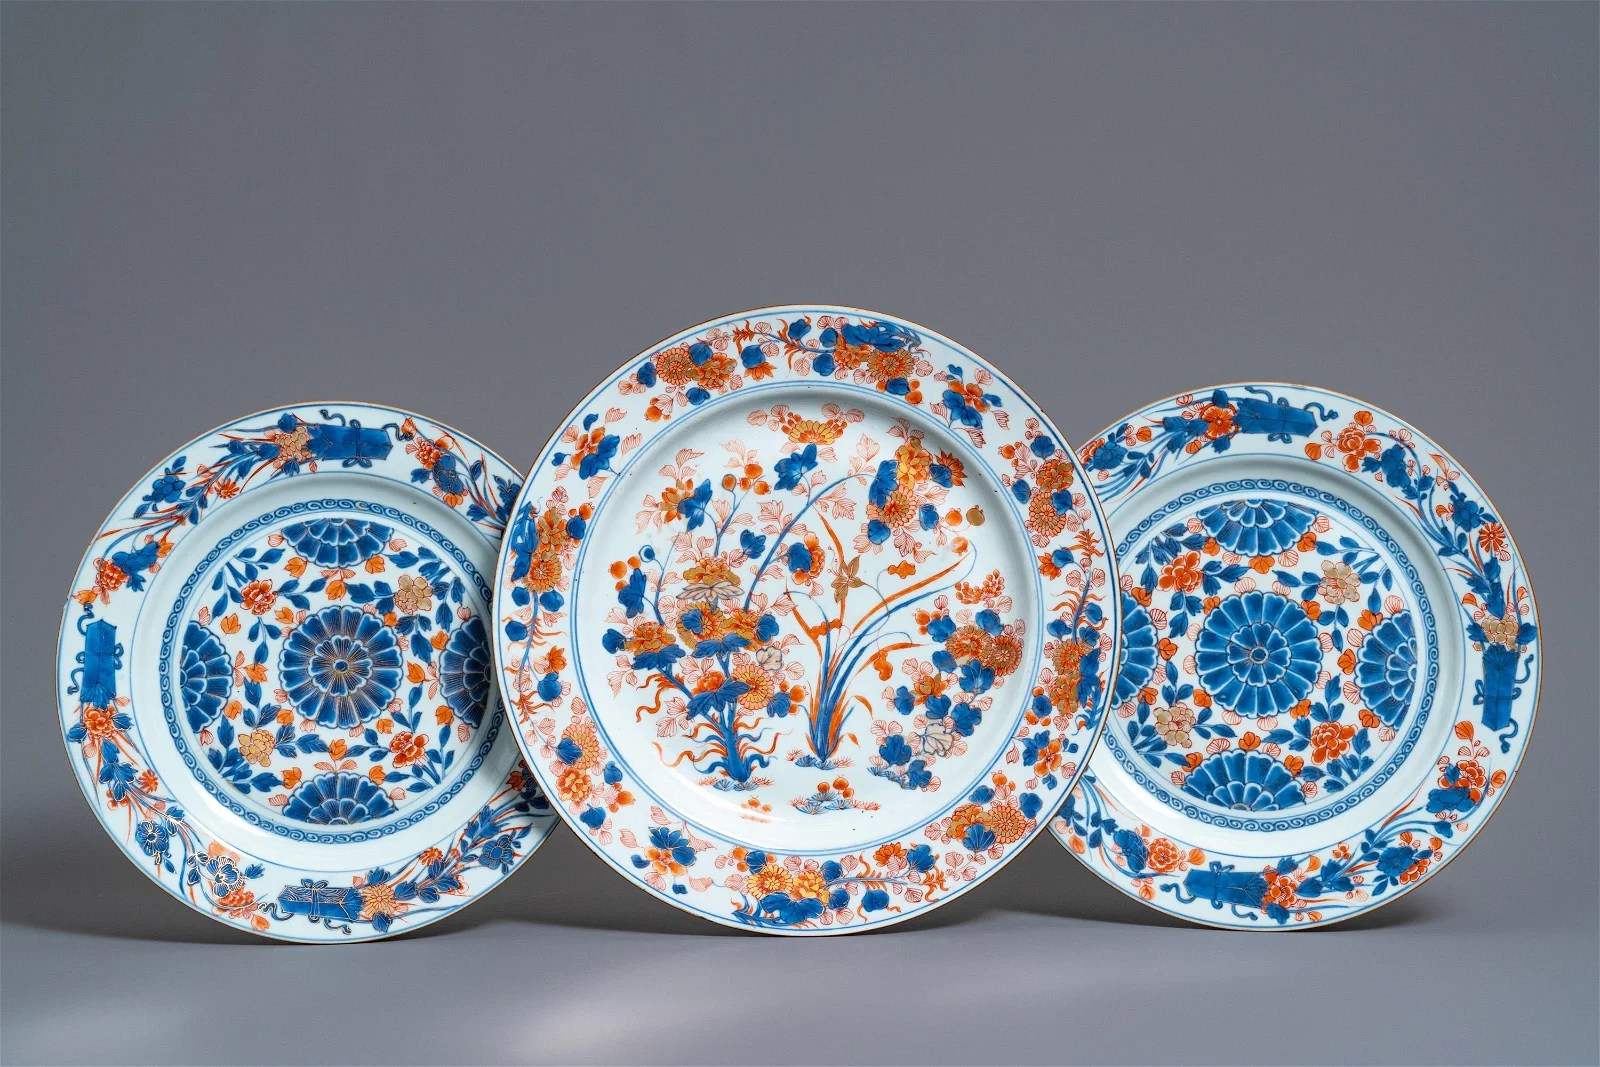 Three Chinese Imari-style chargers with floral design,